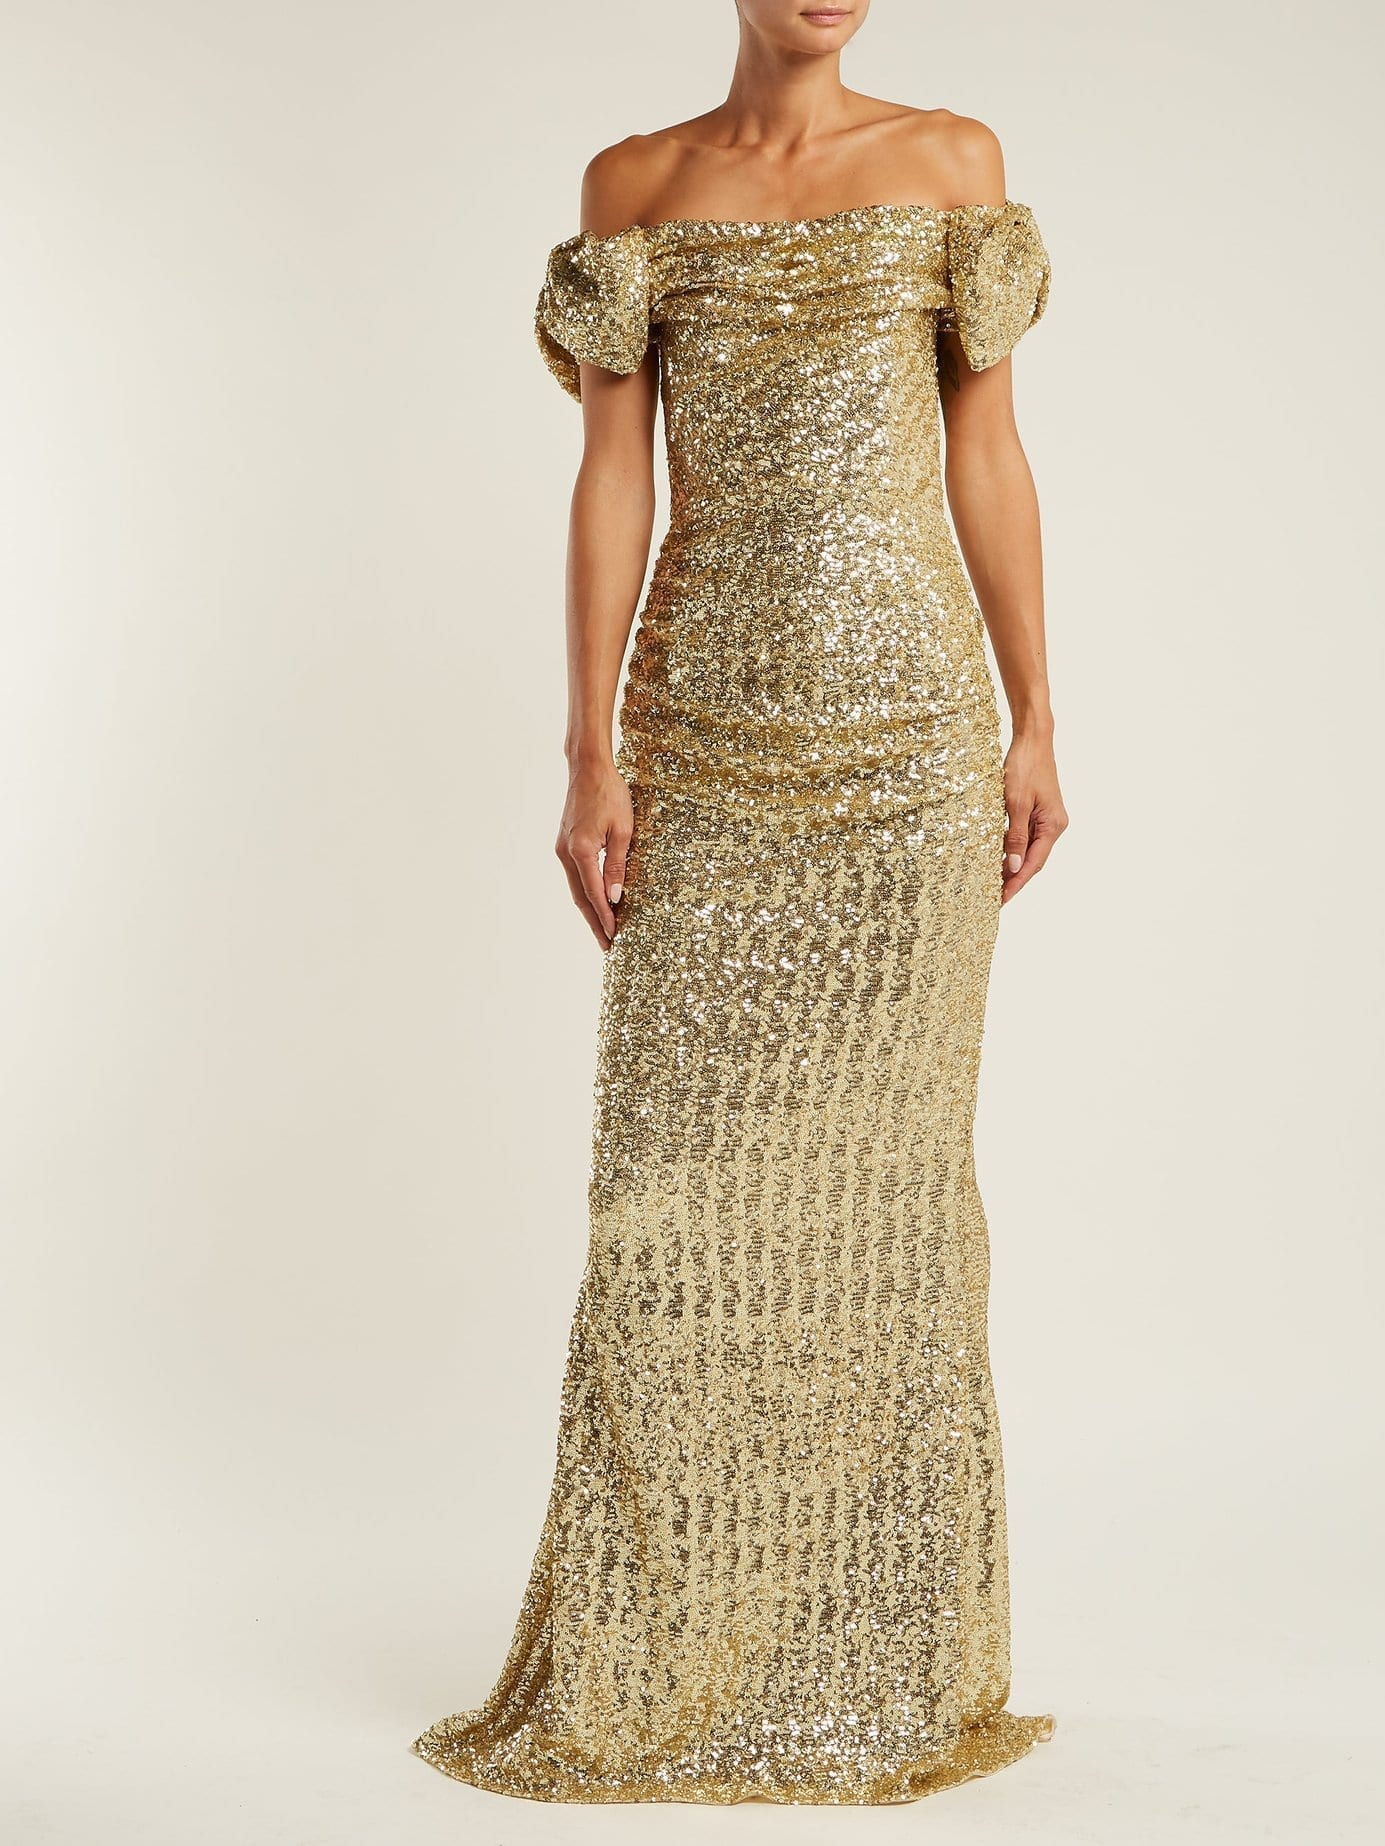 DOLCE & GABBANA Off The Shoulder Sequinned Gown